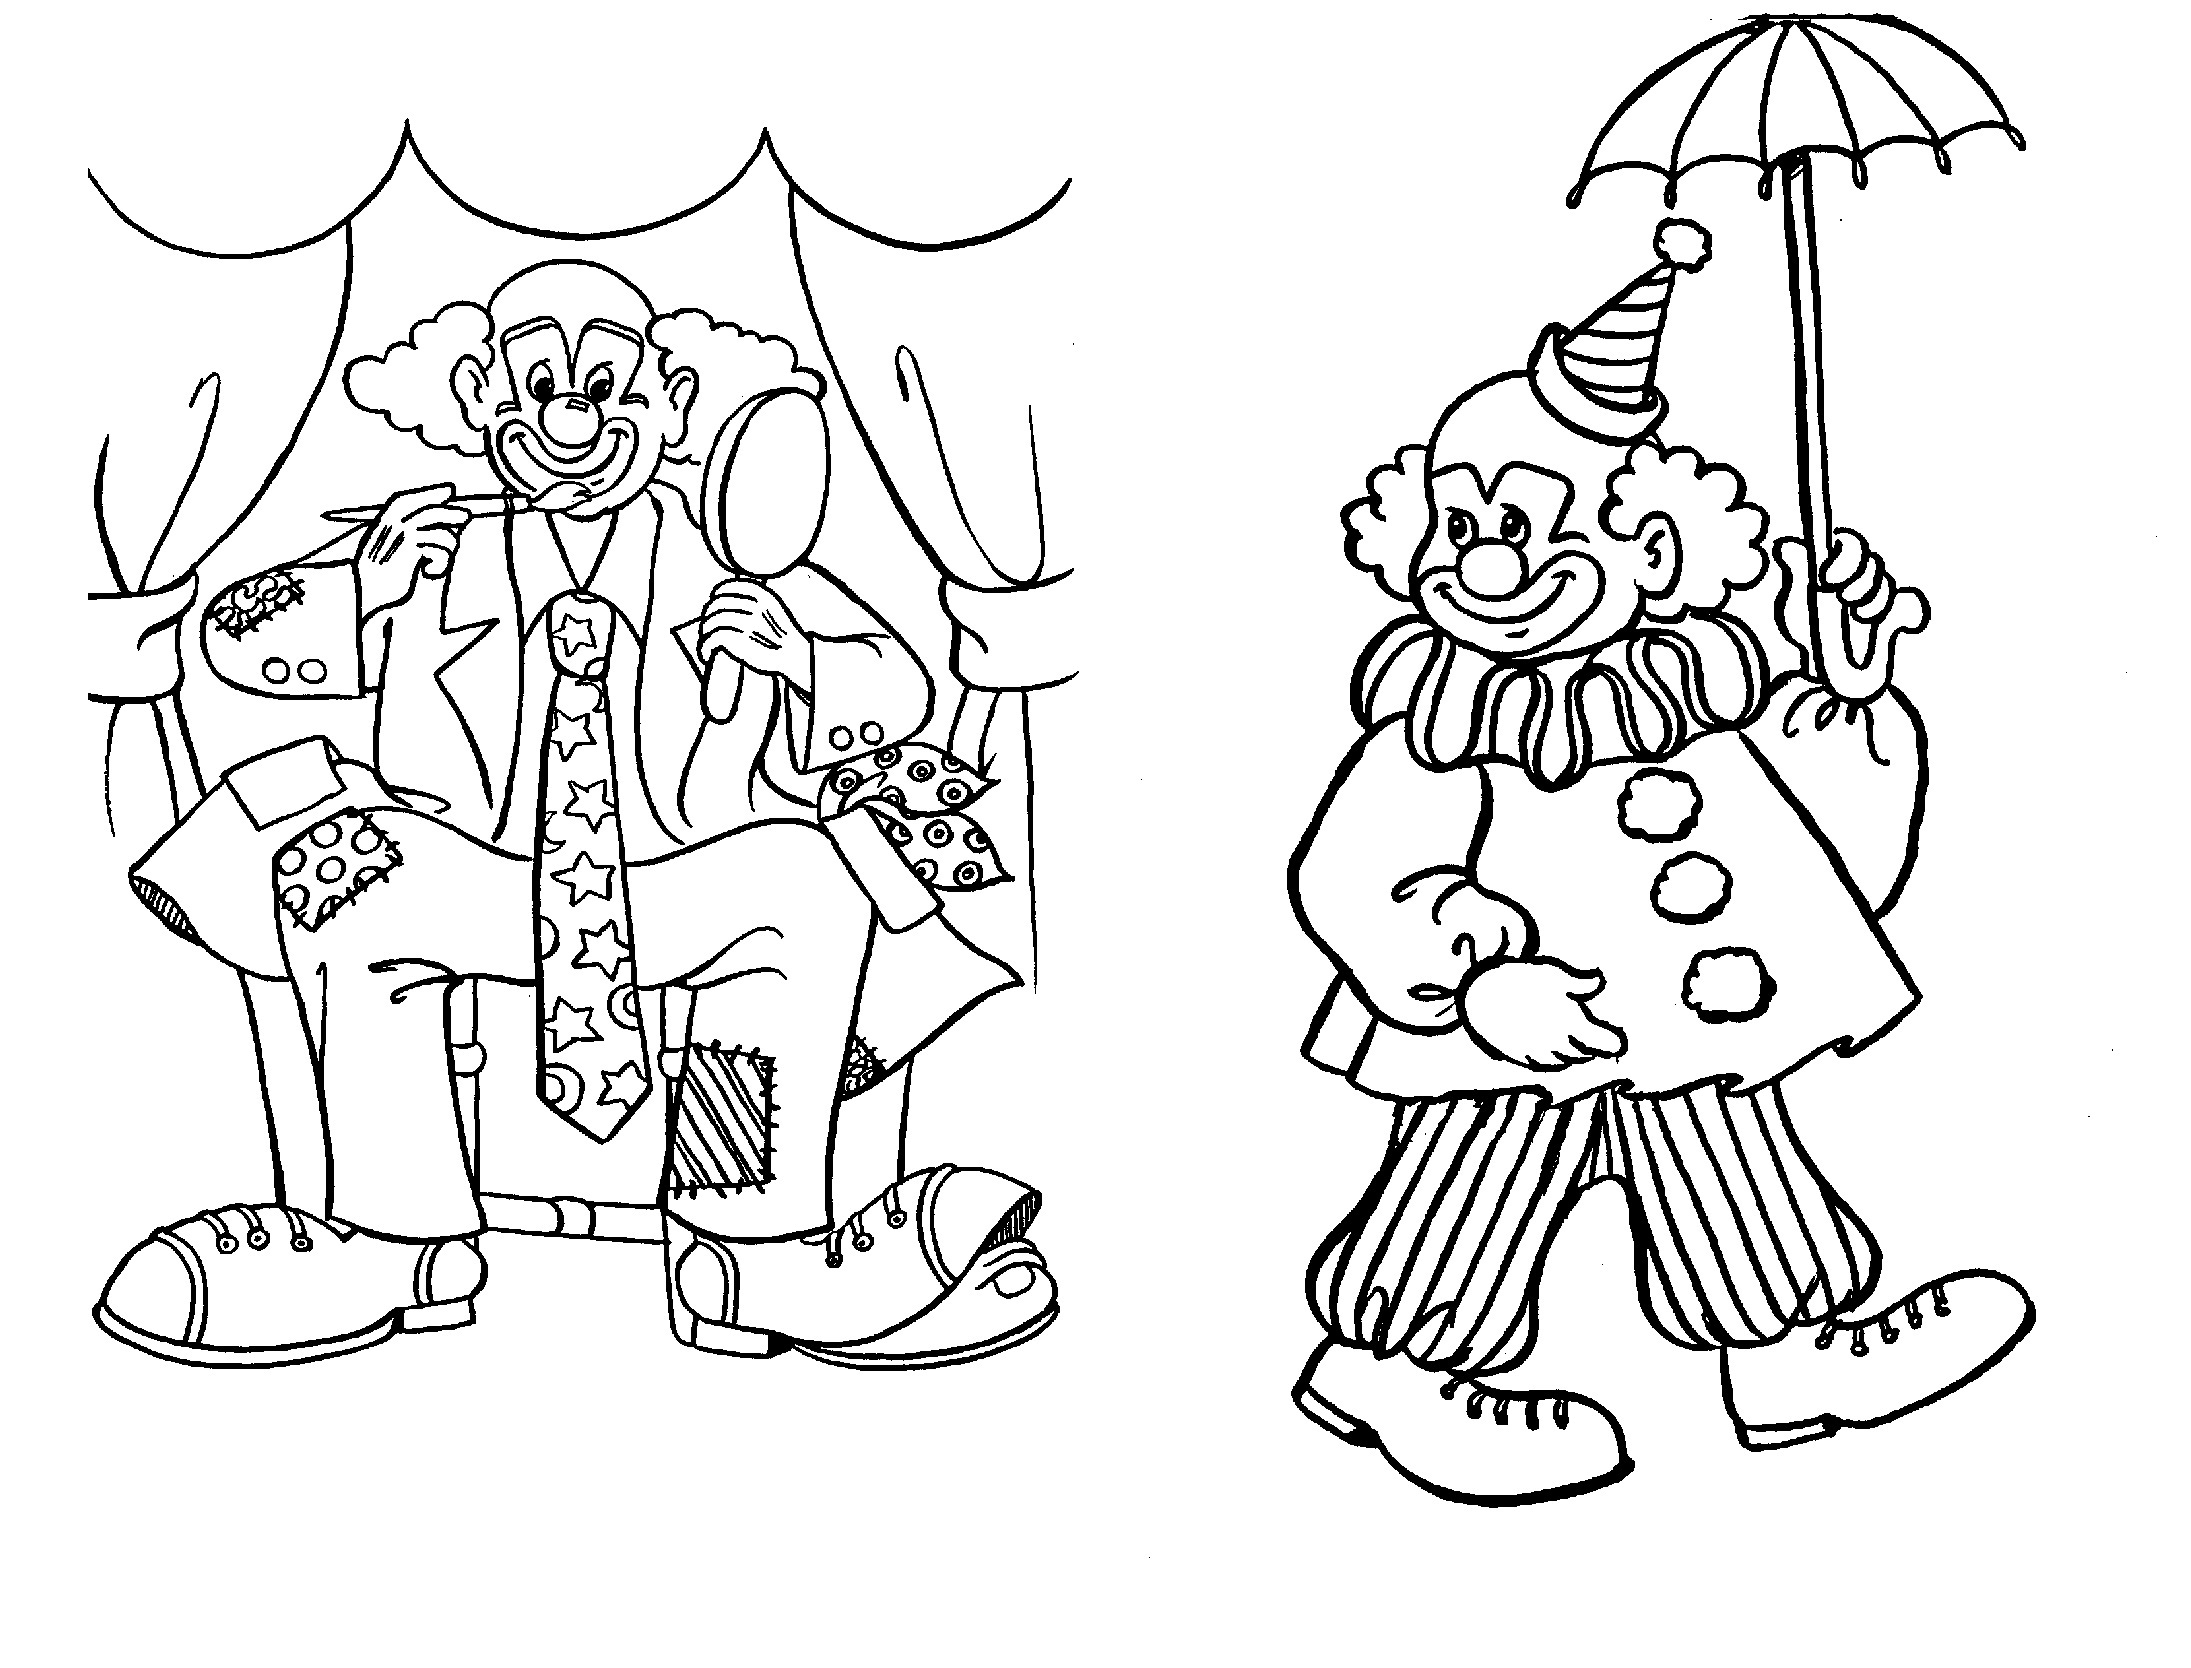 easy clown coloring pages circus clown face coloring page coloring sheets pages clown easy coloring